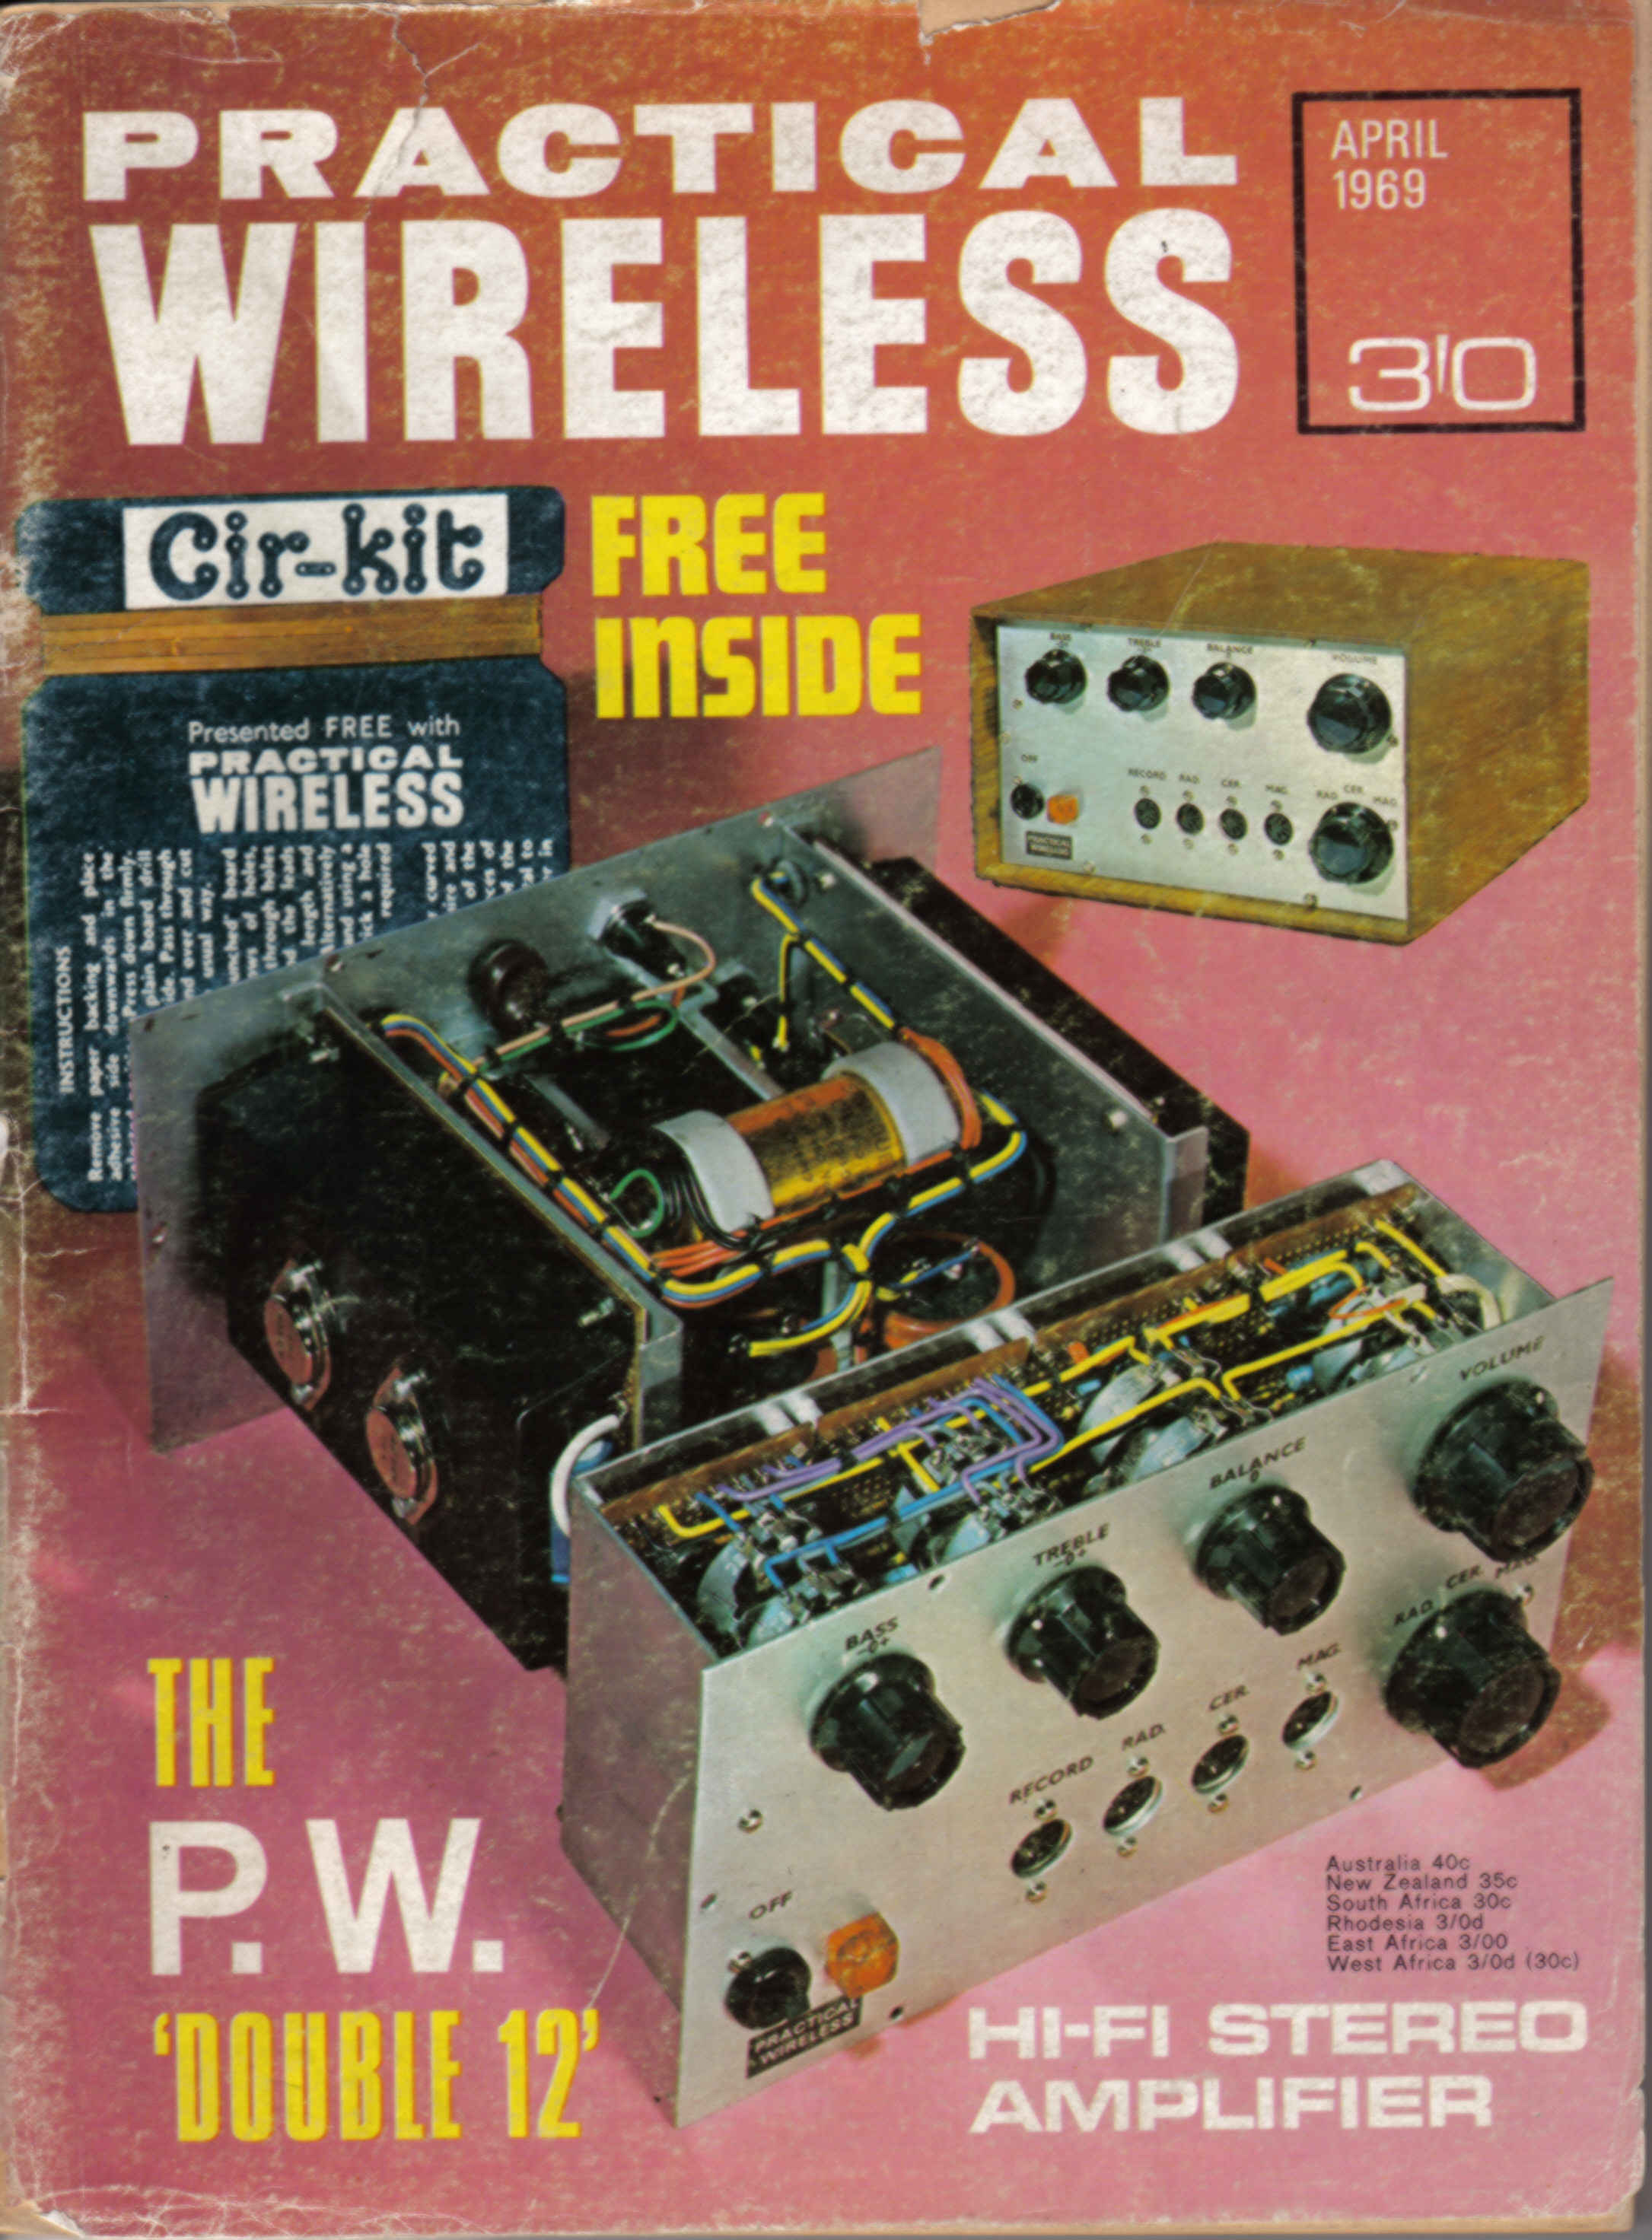 vintage radio and electronics  magazine covers from 1969